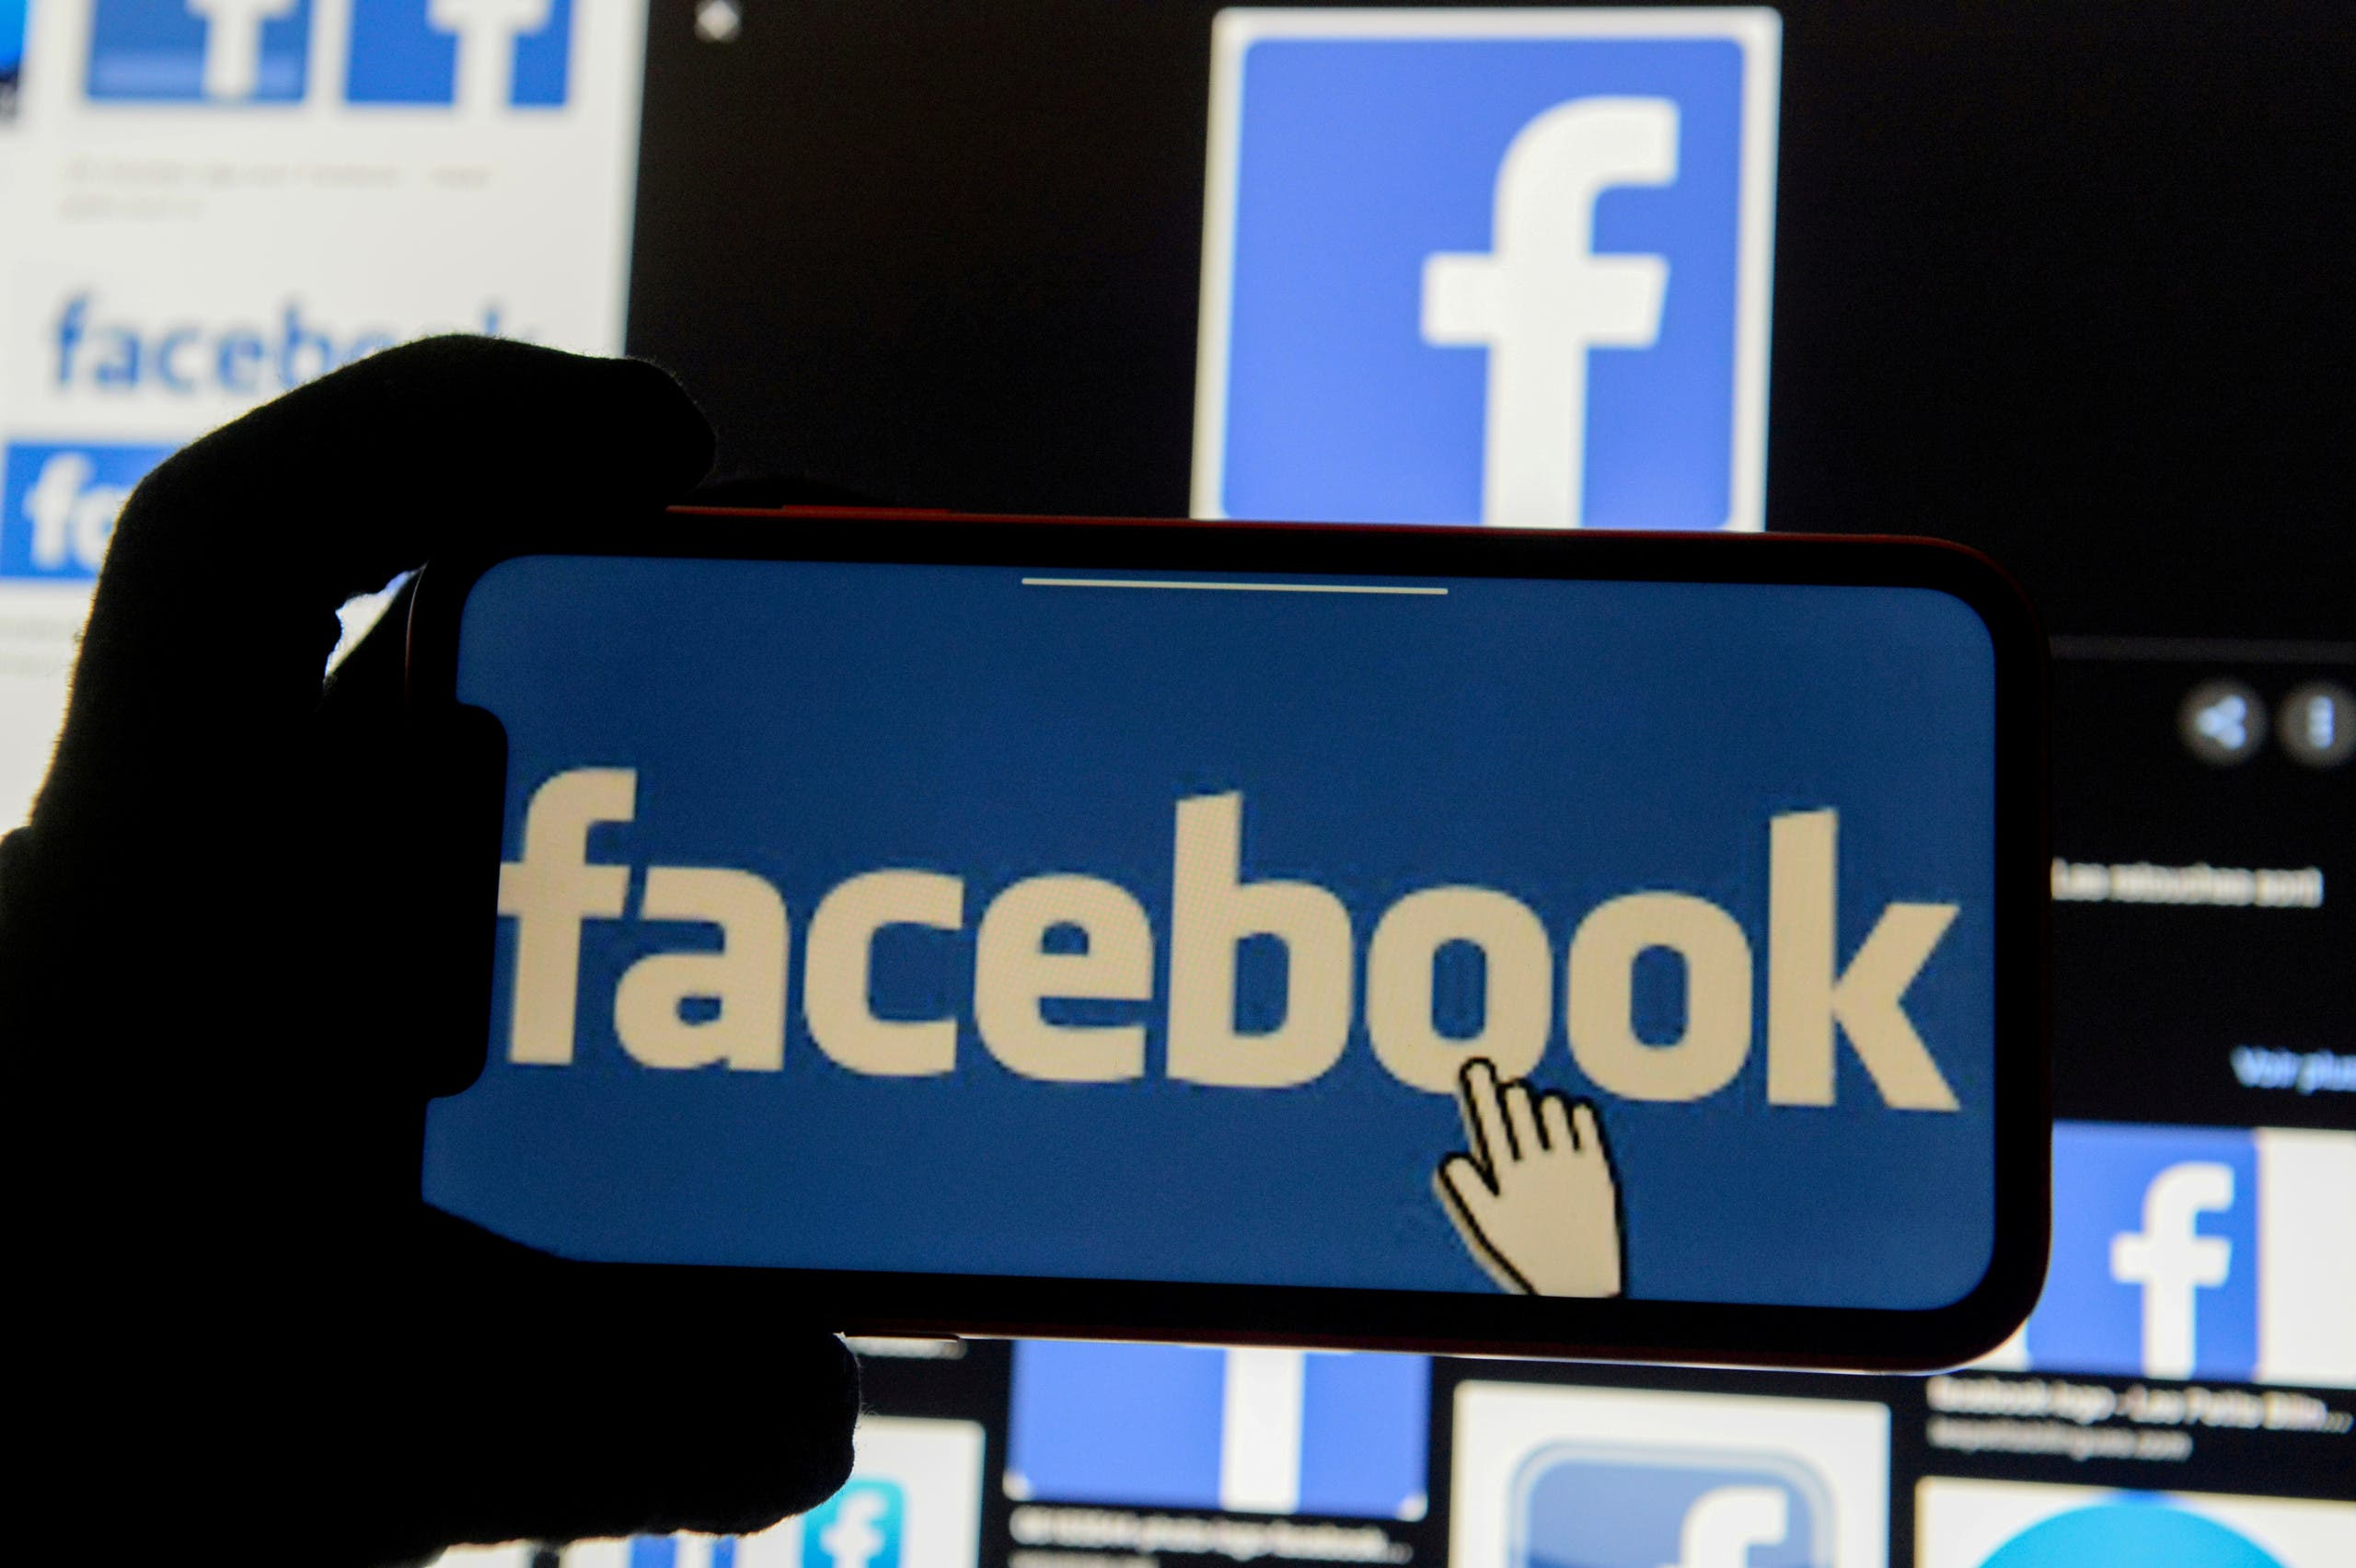 The Facebook logo is displayed on a mobile phone in this picture illustration taken December 2, 2019. (Reuters/Johanna Geron/Illustration)